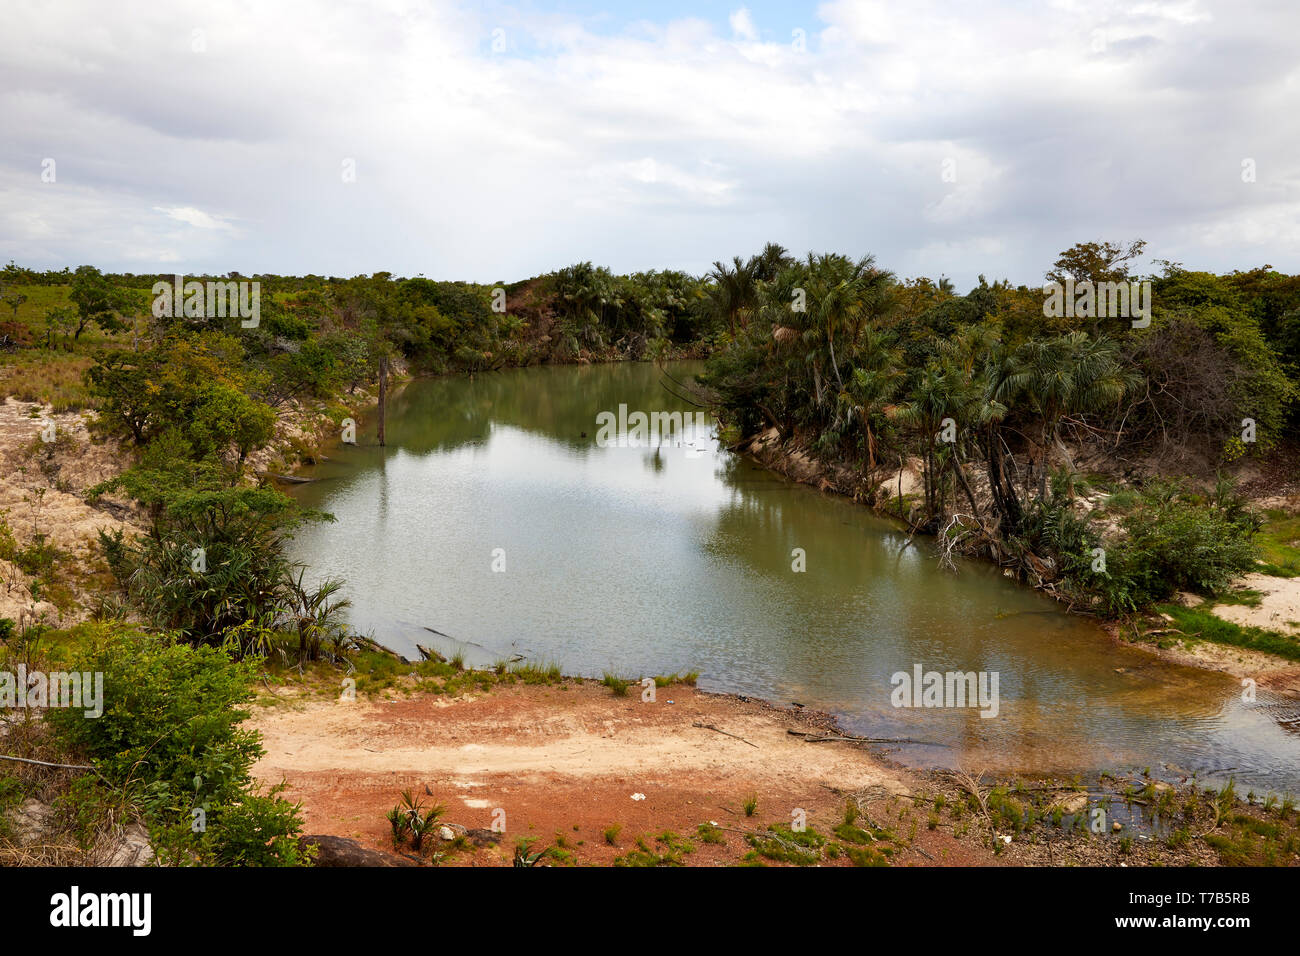 Pirara River in Guyana South America - Stock Image